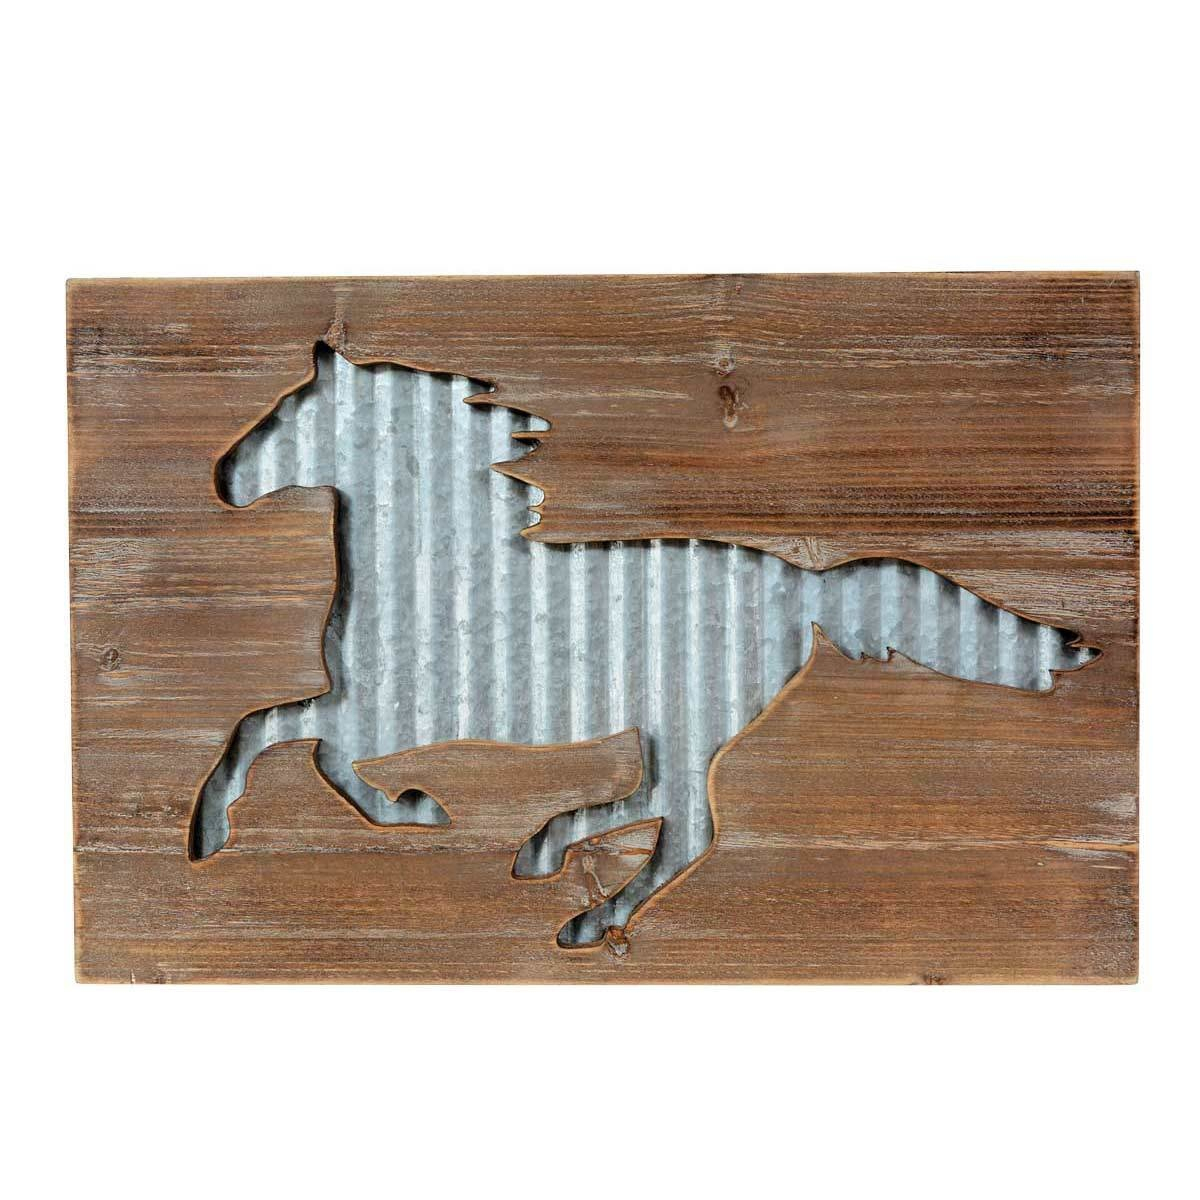 Western Metal Art Wall Hangings Intended For 2020 3 Piece Star Wall Decor Sets (View 20 of 20)